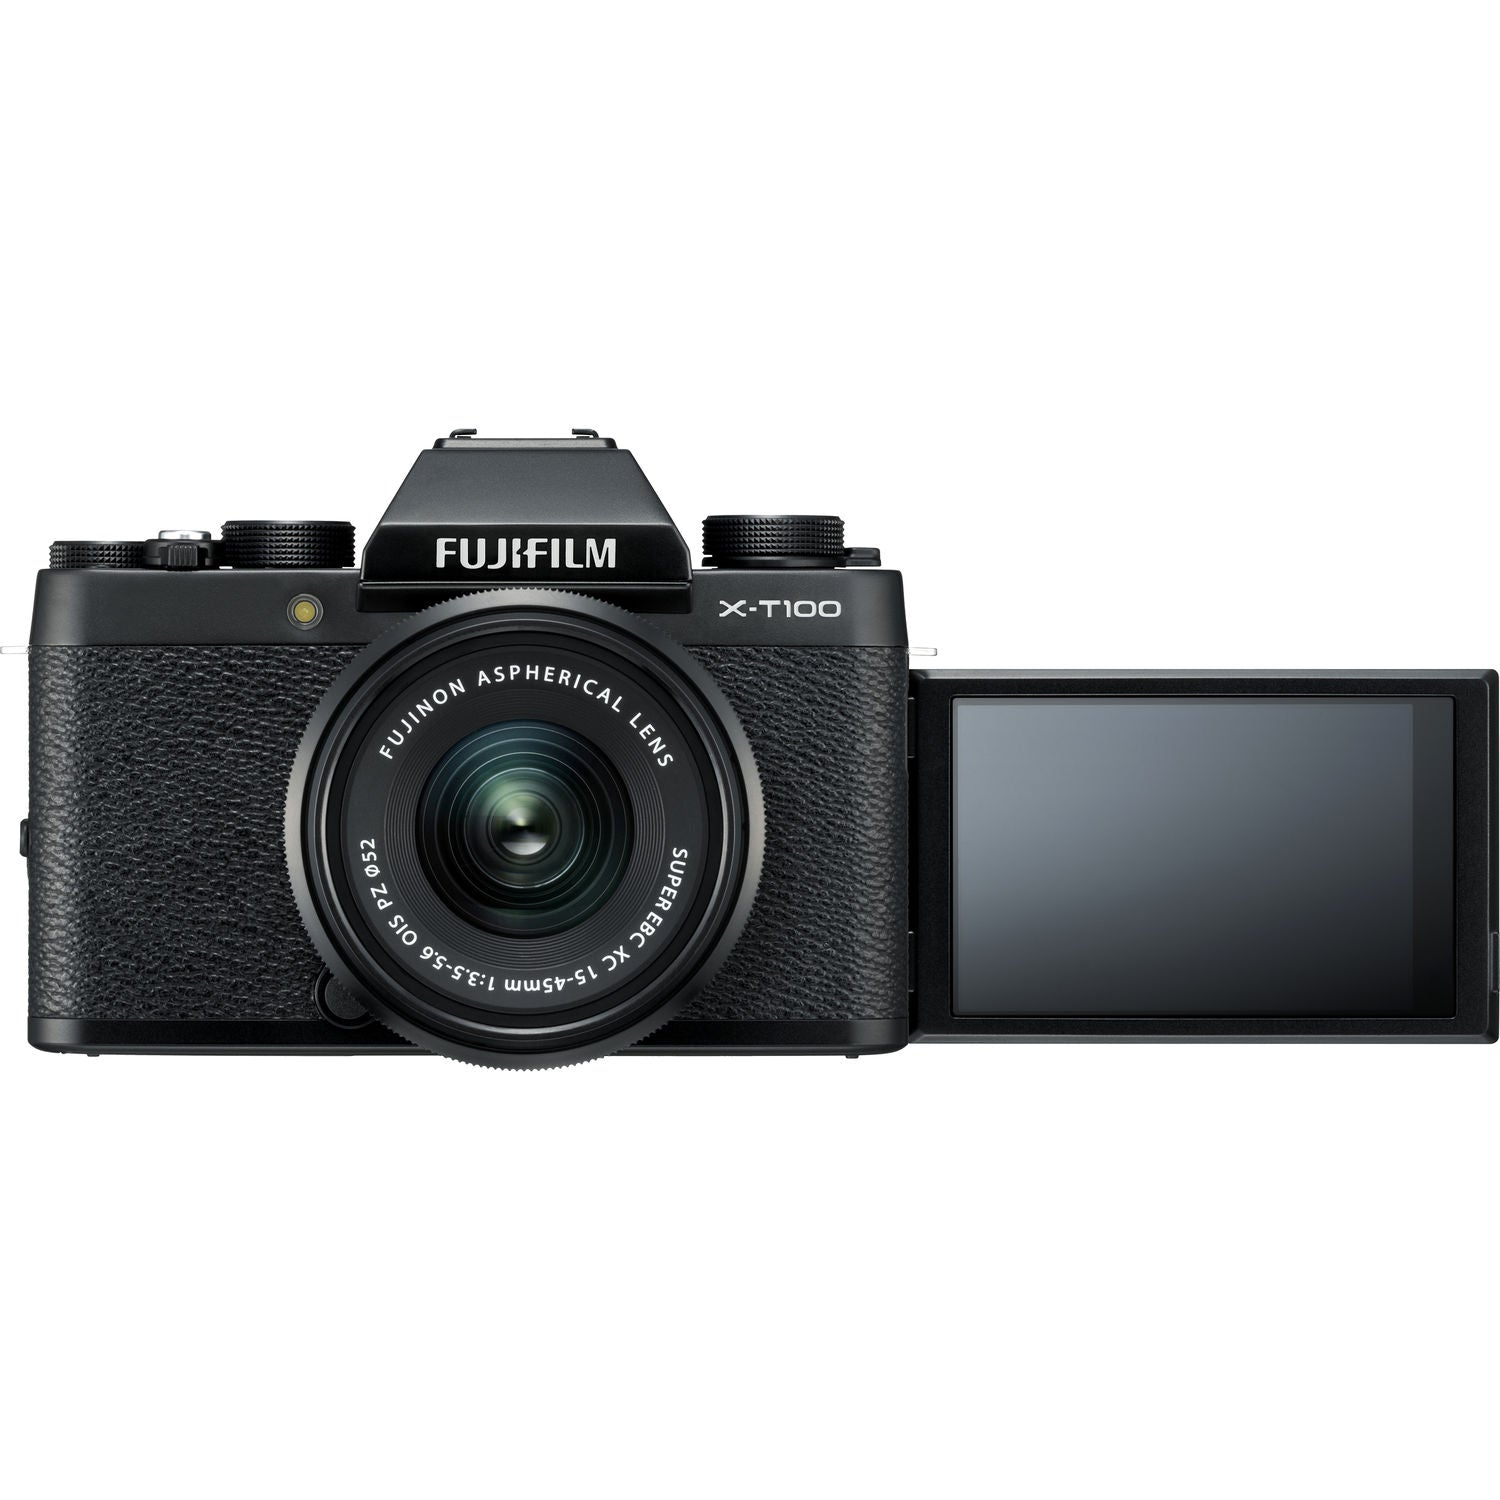 FUJIFILM X-T100 Mirrorless Digital Camera with 15-45mm Lens (Black)